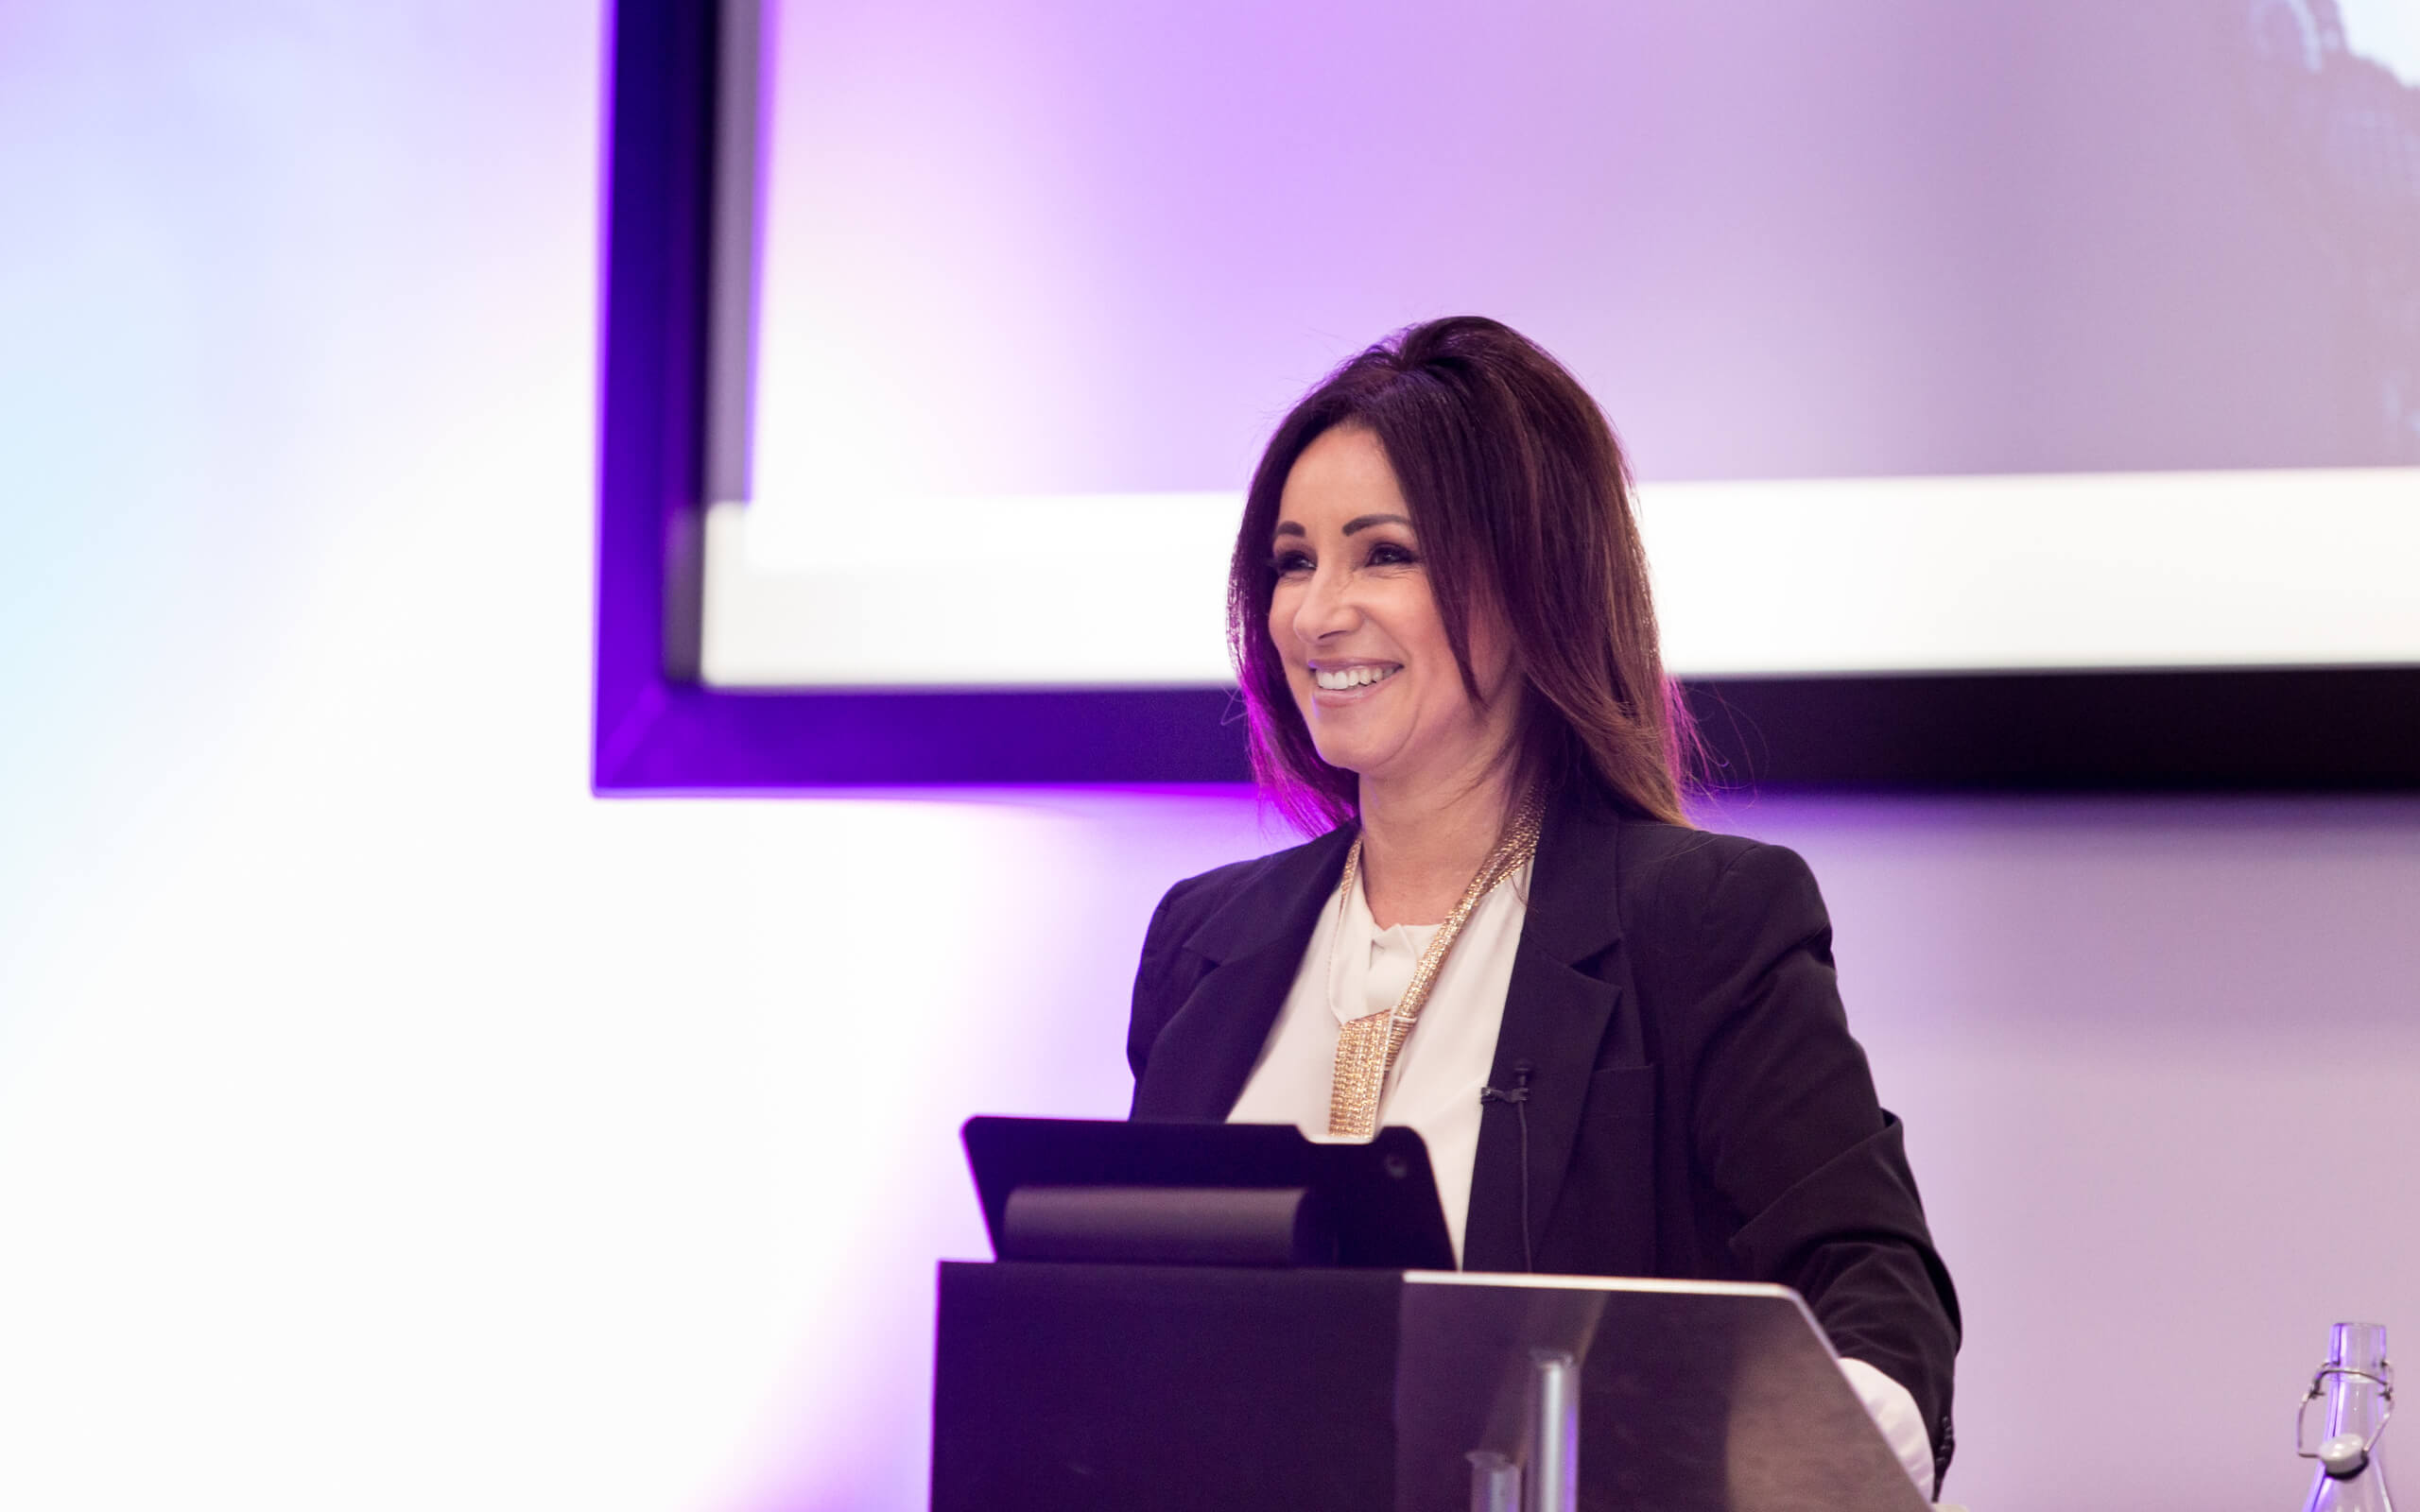 Female speaker at an event